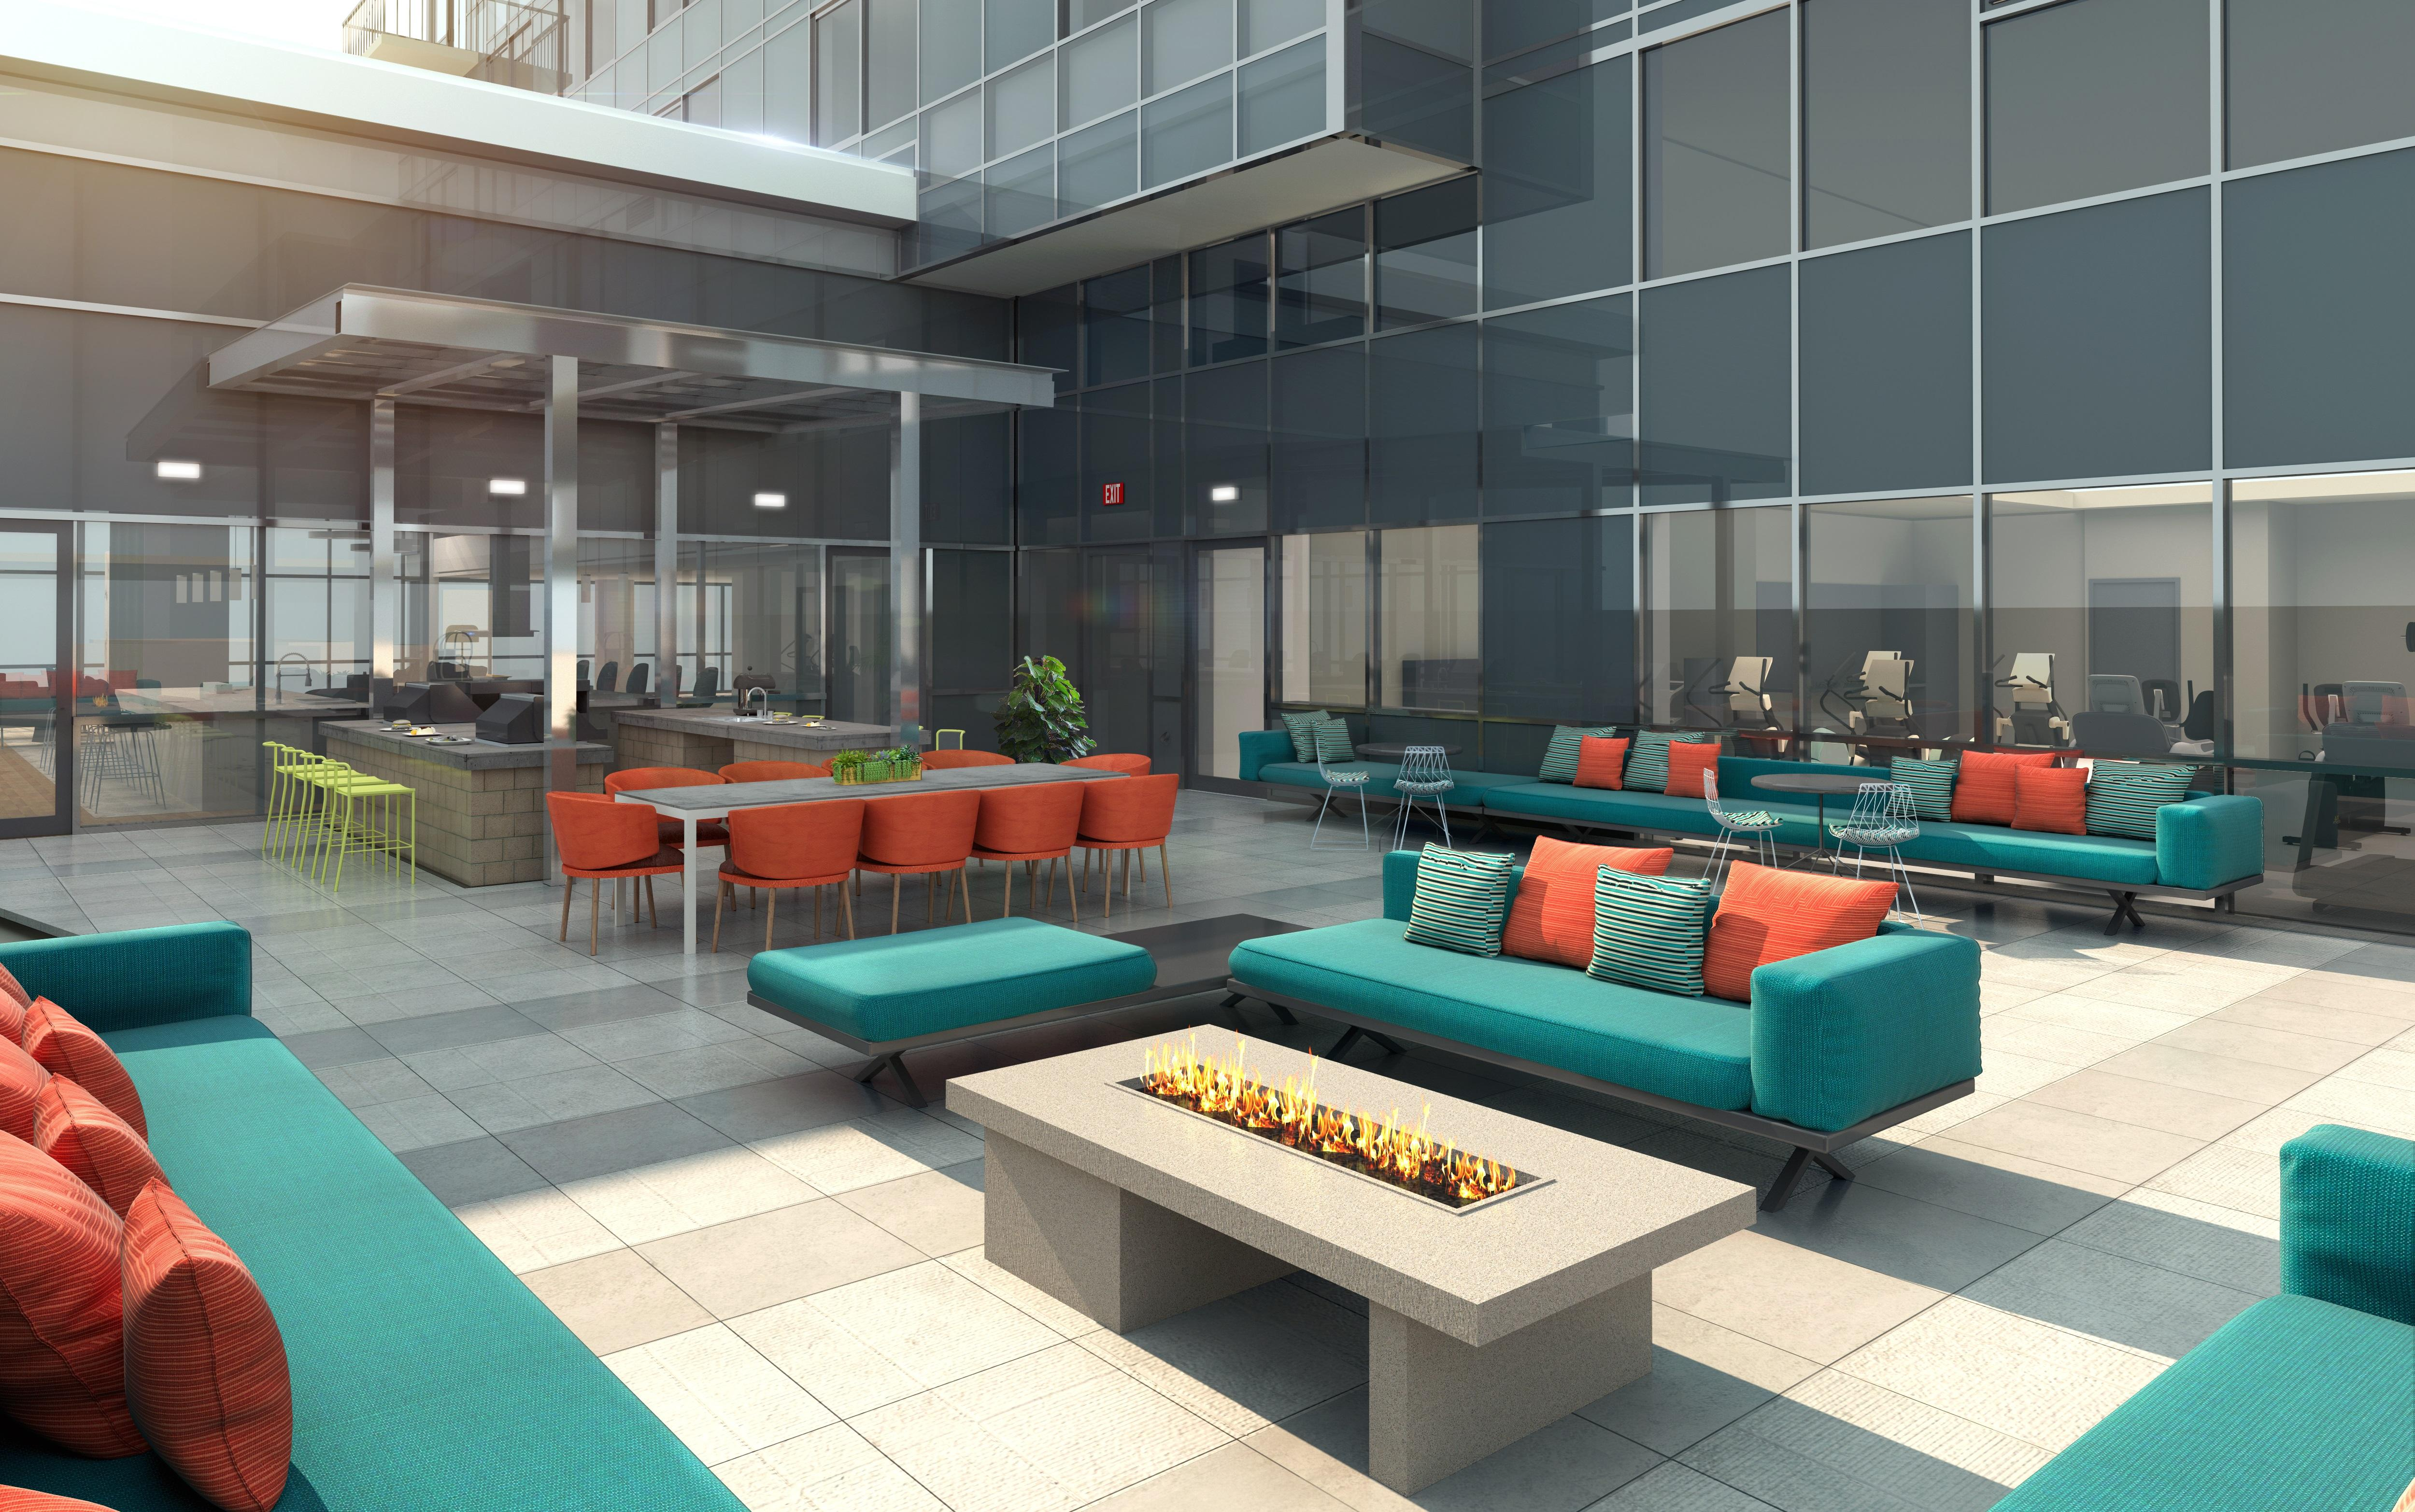 The Collection patio at The Danforth features an outdoor kitchen and lounge seating.